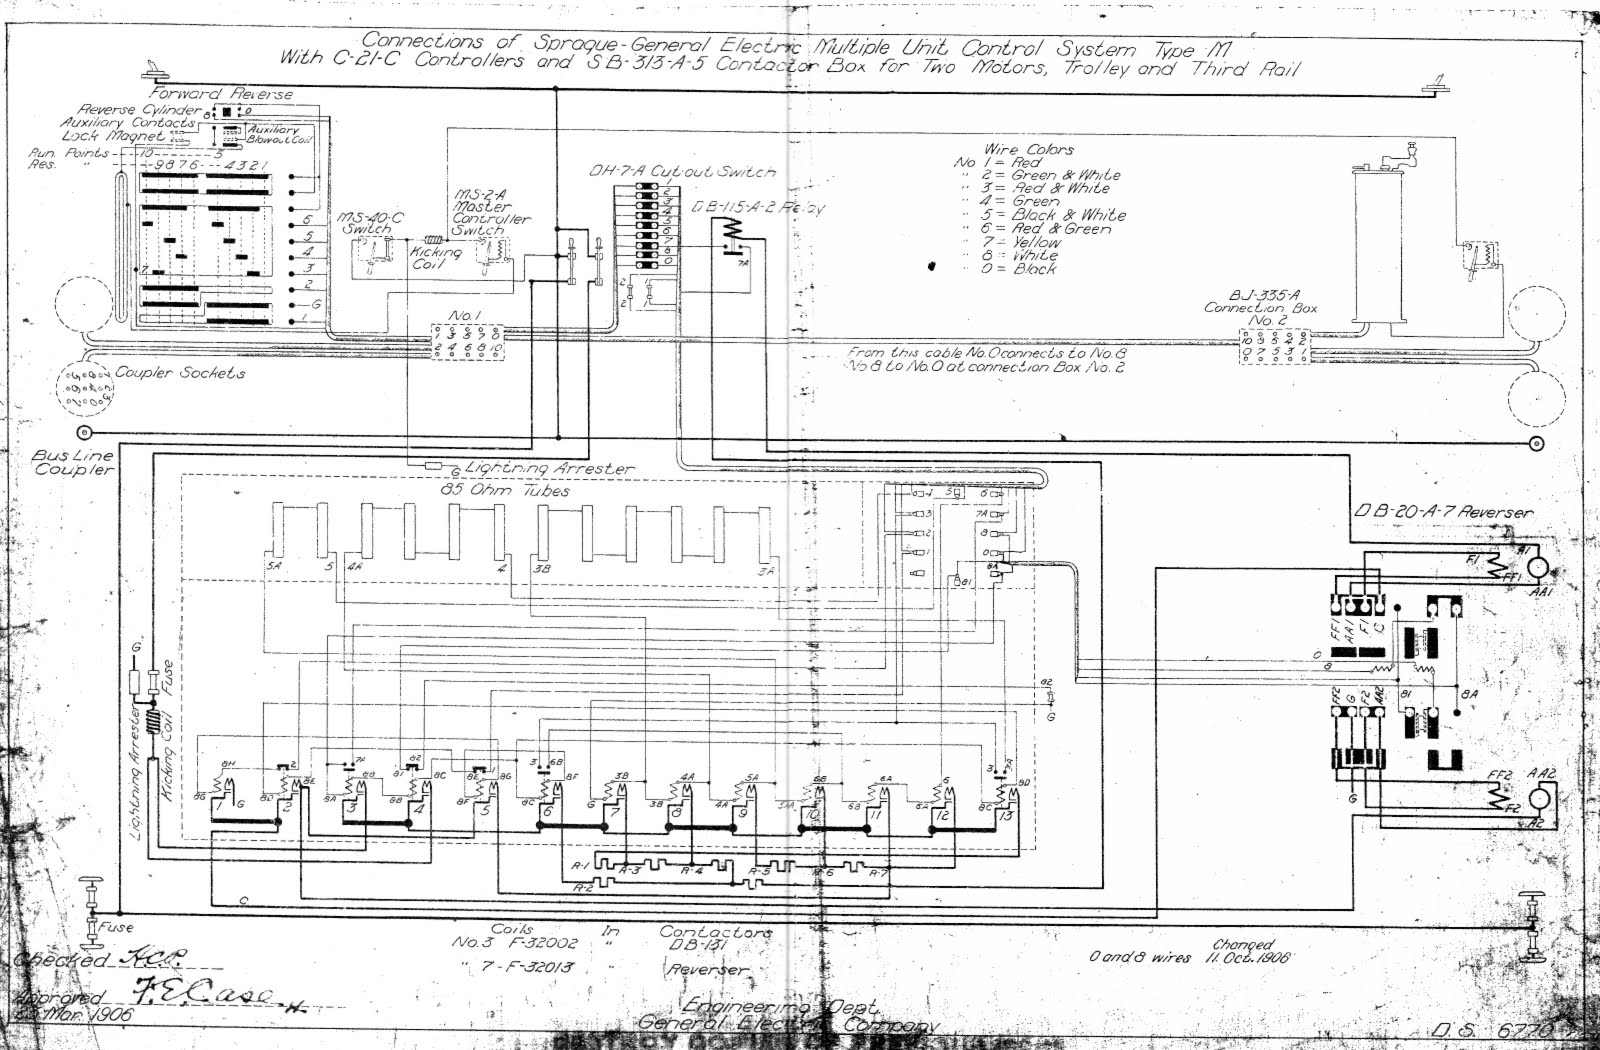 1924 Buick Starter Wiring Diagram furthermore Mtd Starter Solenoid Wiring Diagram moreover 6 Pin Trailer Wiring Diagrams Ford F 250 further Vacuum Brake Booster Gmc Motor Home as well Nissan Track Car. on delorean wiring diagrams